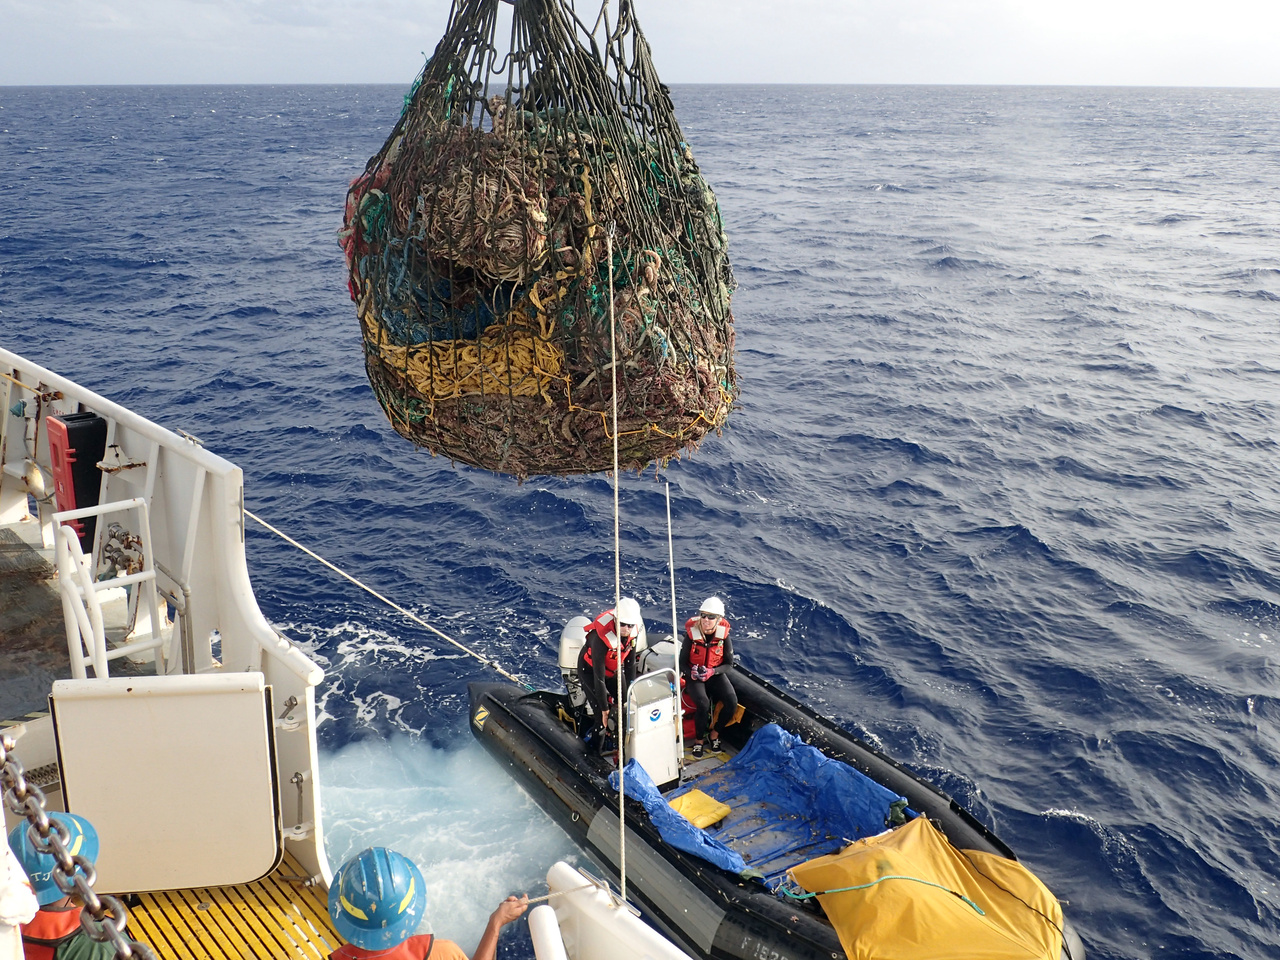 A metric ton of net is lifted from the small boat to the NOAA Ship by crane